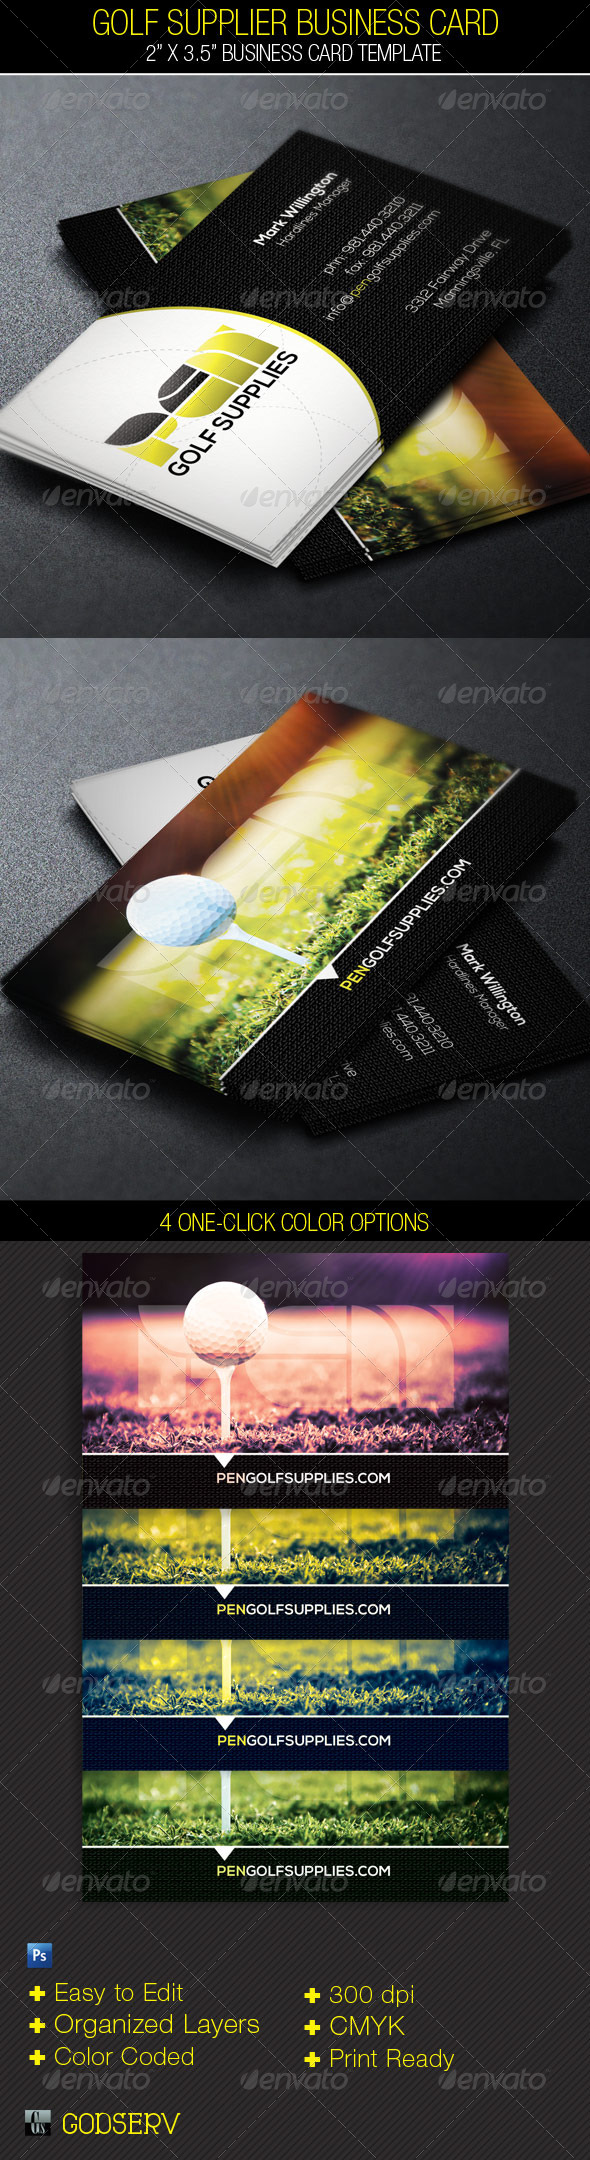 Golf Supplier Business Card Template - Industry Specific Business Cards